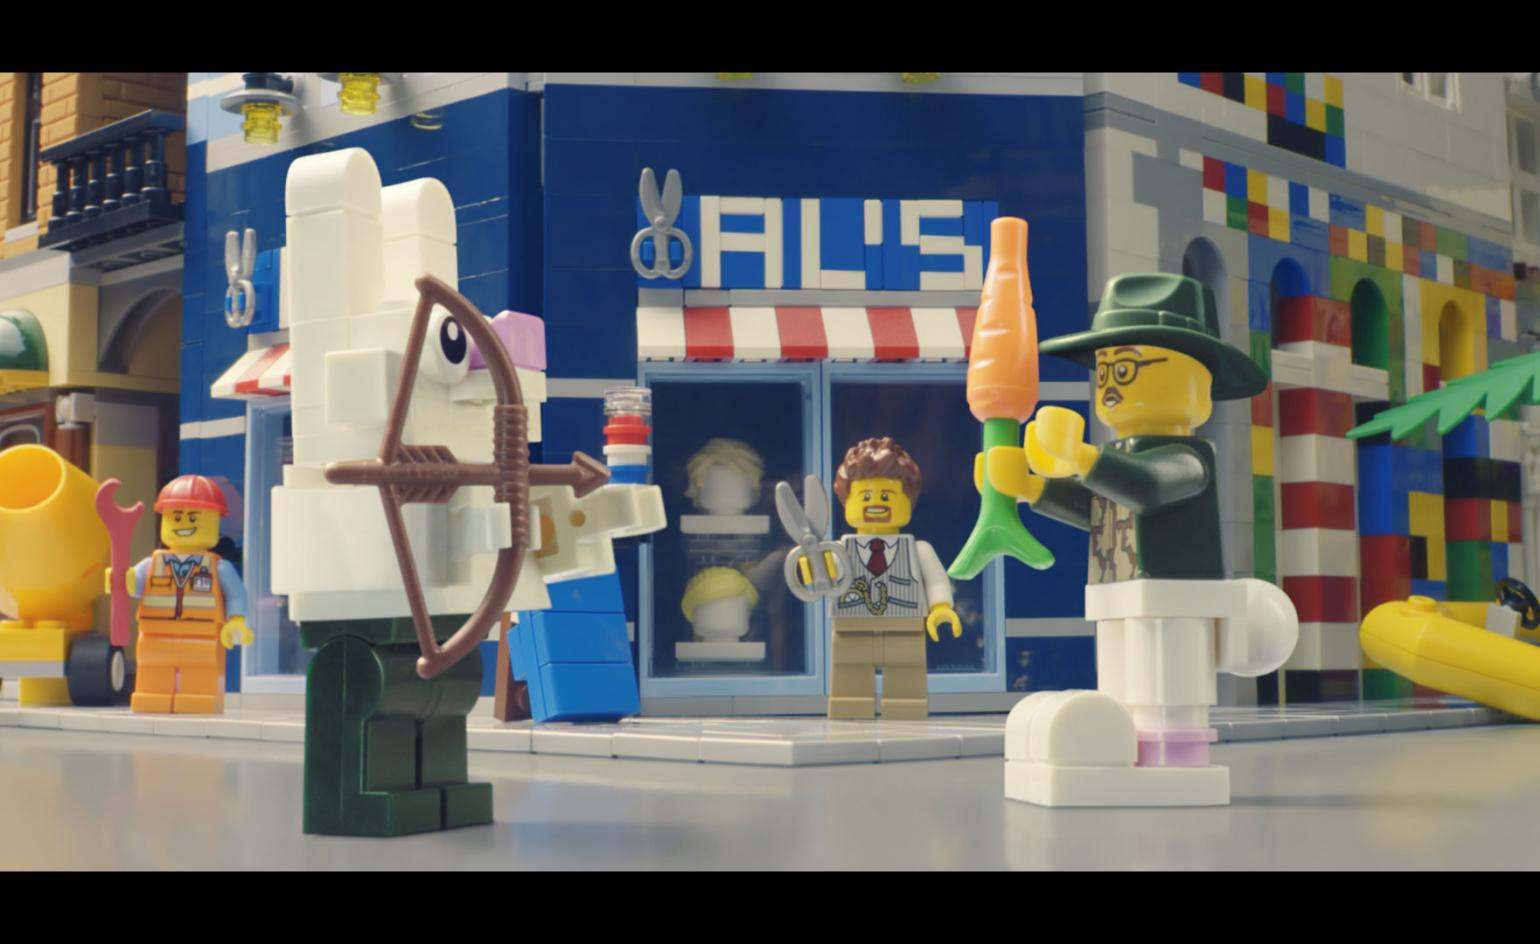 Outside the blocks: Lego thinks differently to inspire creativity